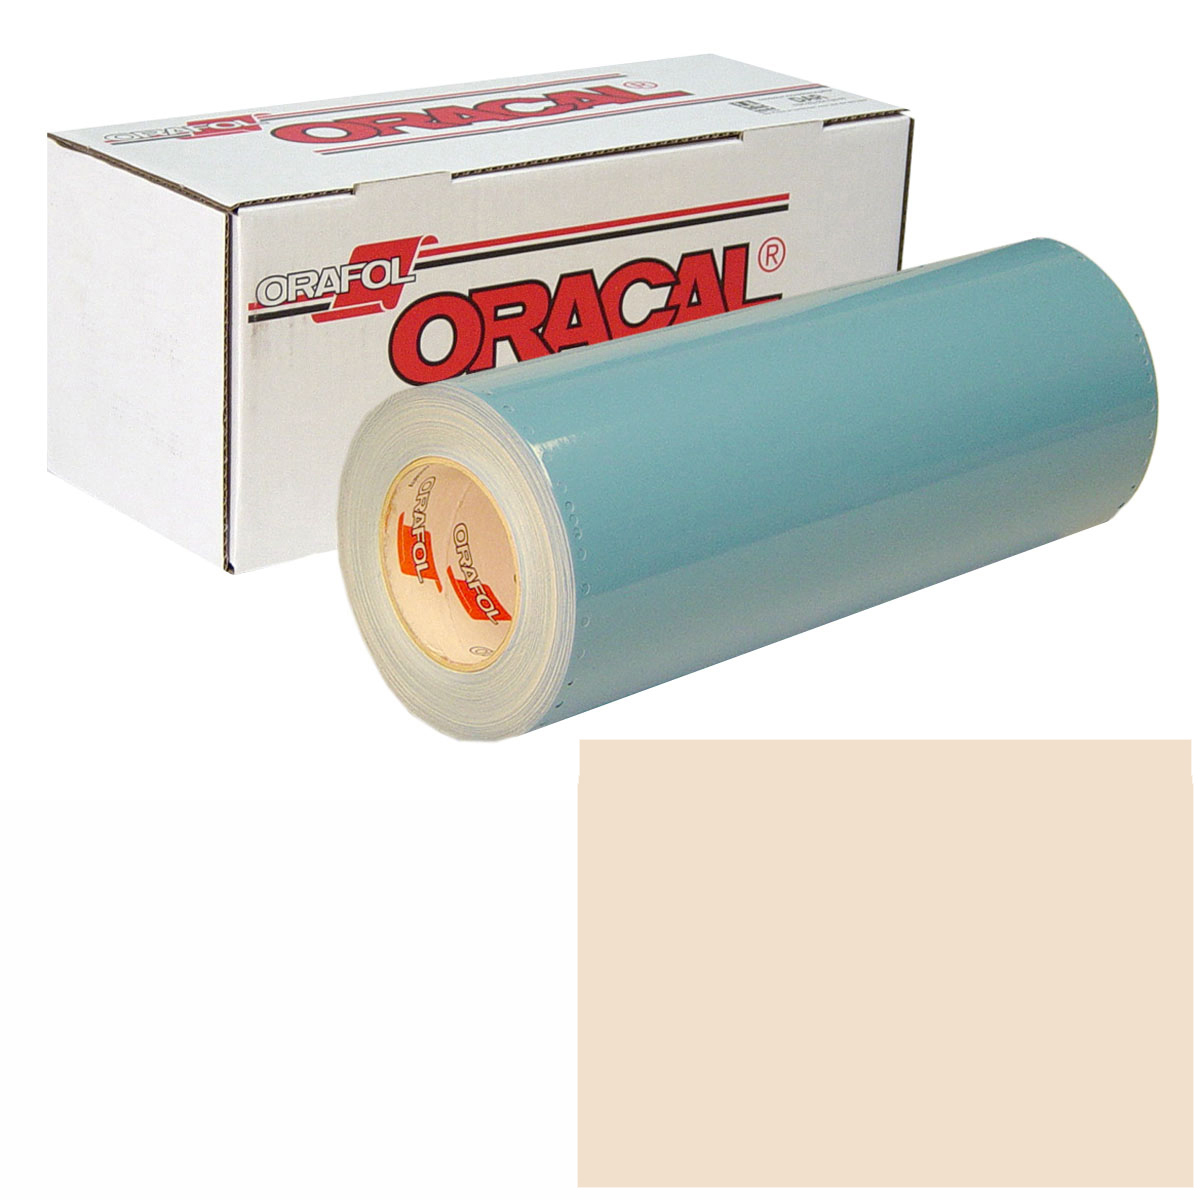 ORACAL 751 30In X 50Yd 018 Light Ivory